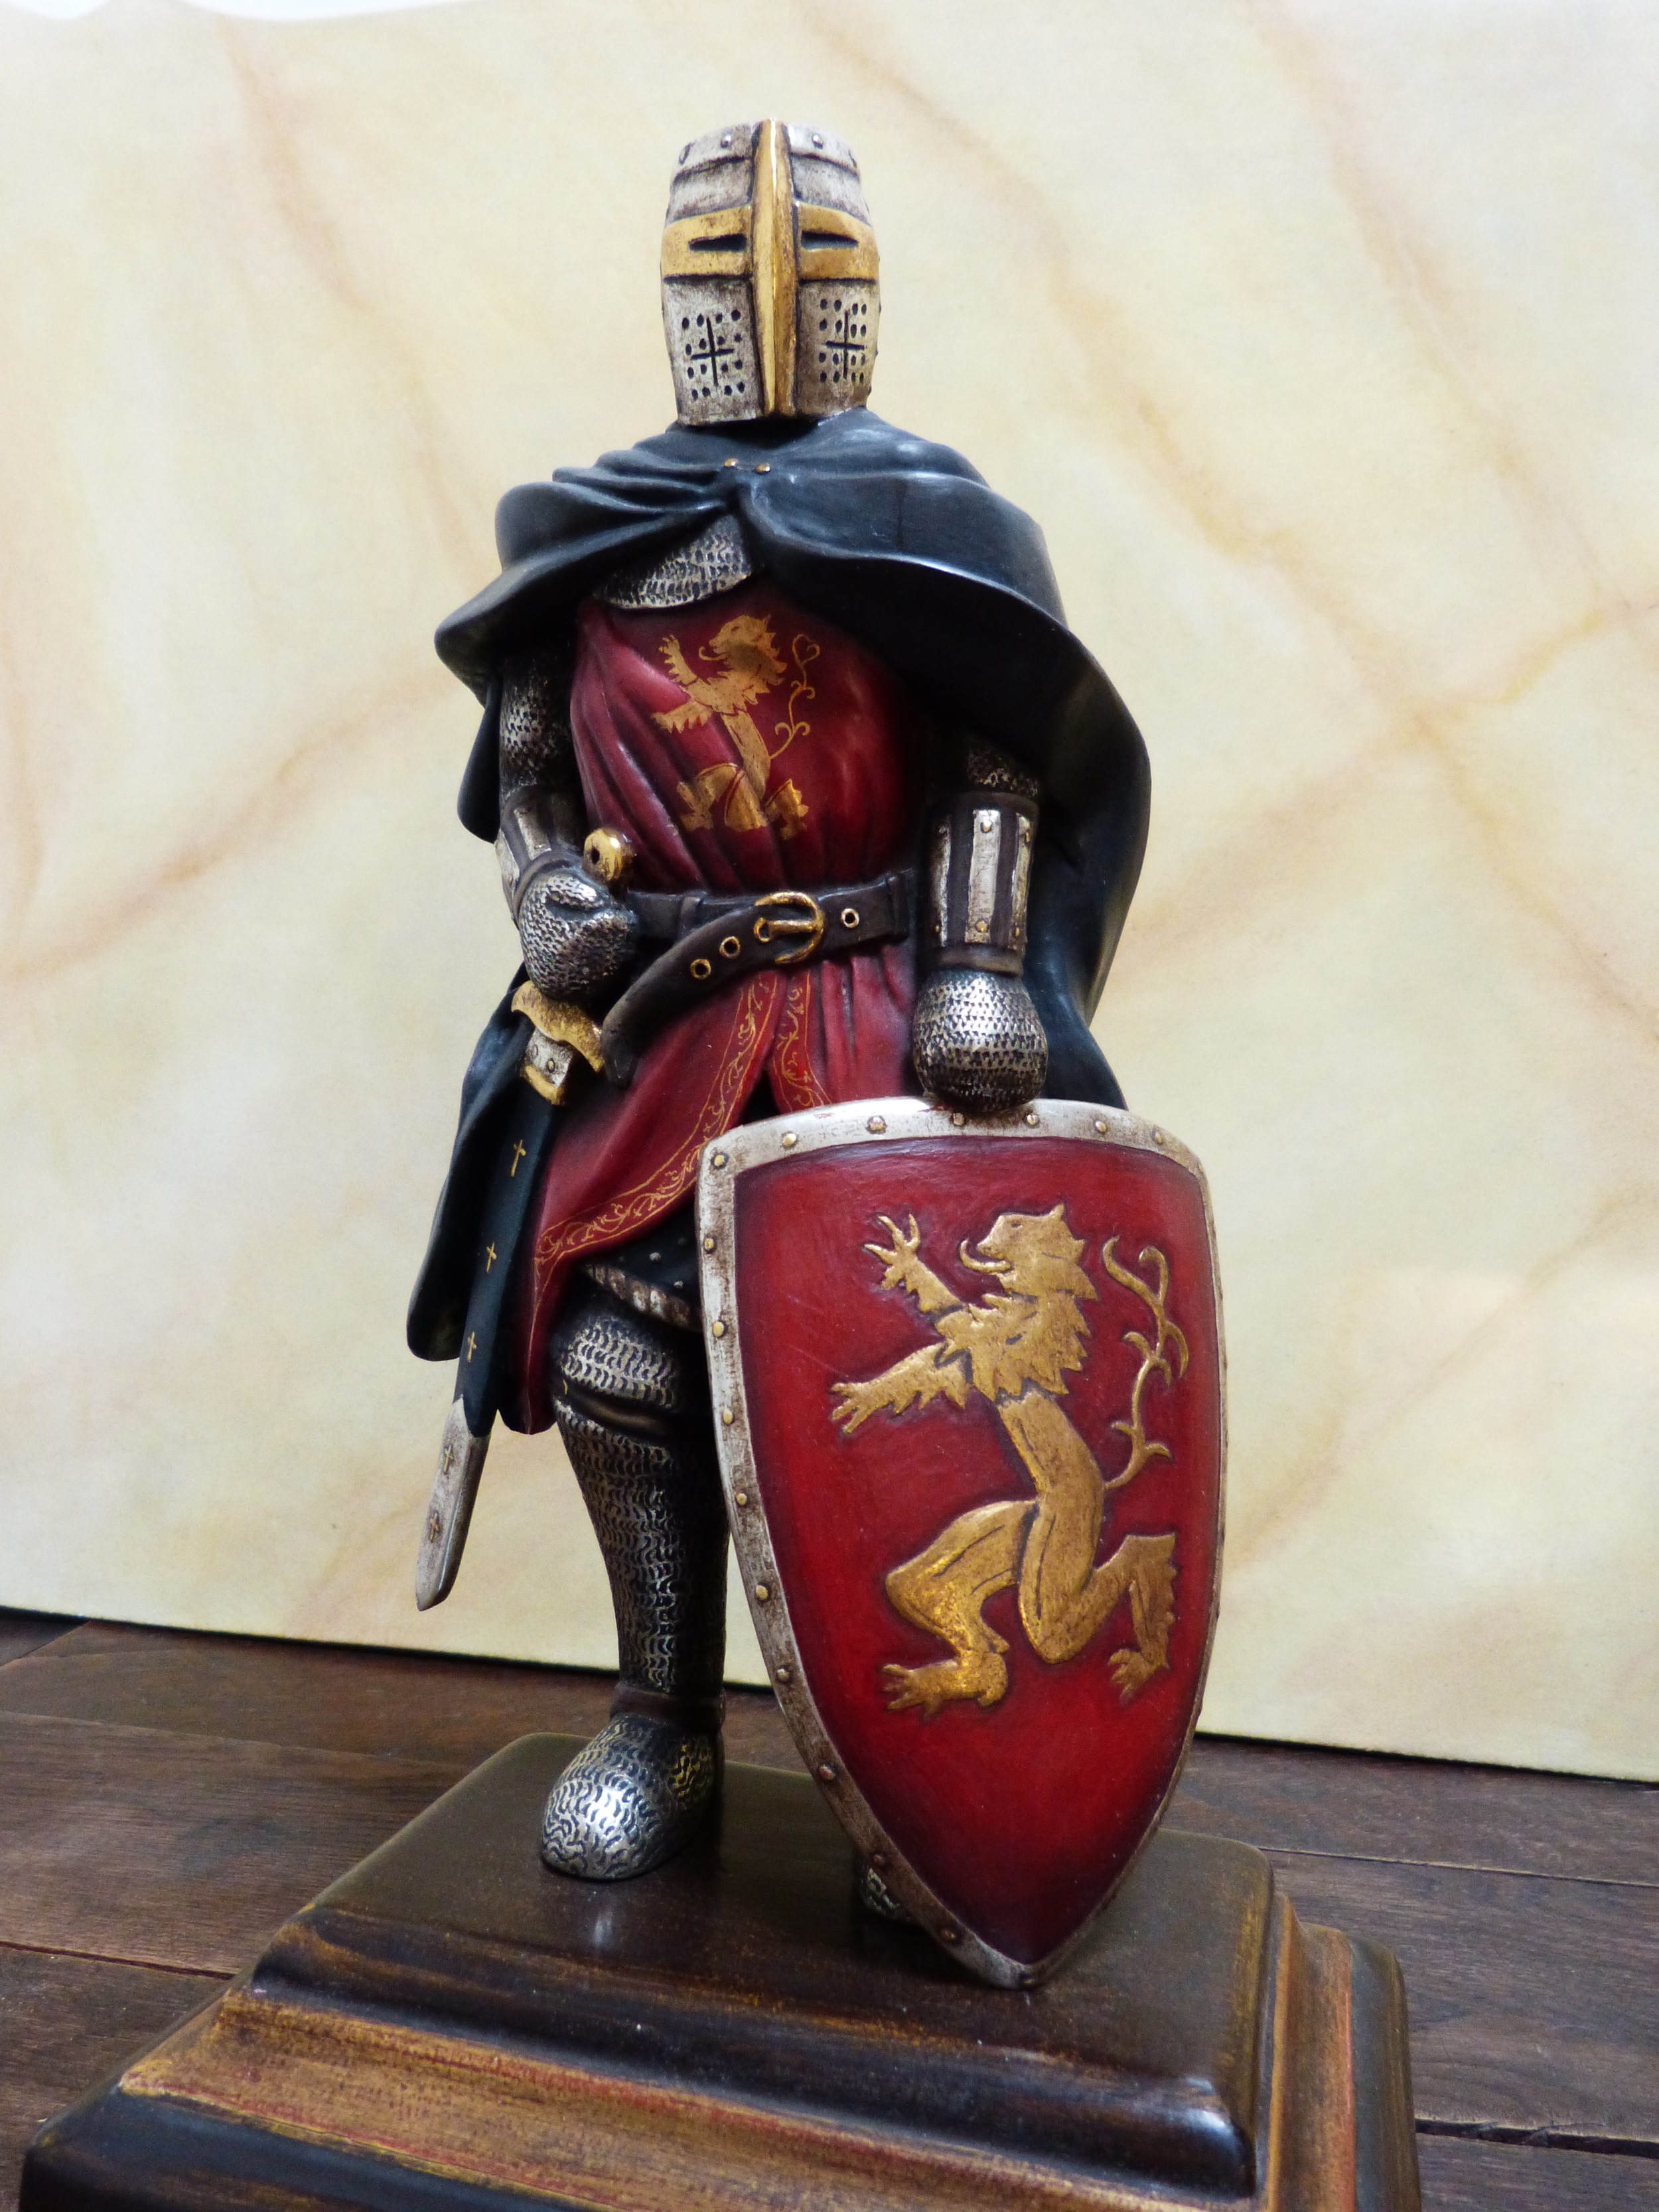 This knight is about 1 foot tall and is mounted on a wooden pedestal.  This figure depicts an English Crusader from the 13th century. The armor is gilded. The ornaments on the frock are blotted out by hand. The colored parts are hand-painted, mimicking realistic light effects (glare and shadow).